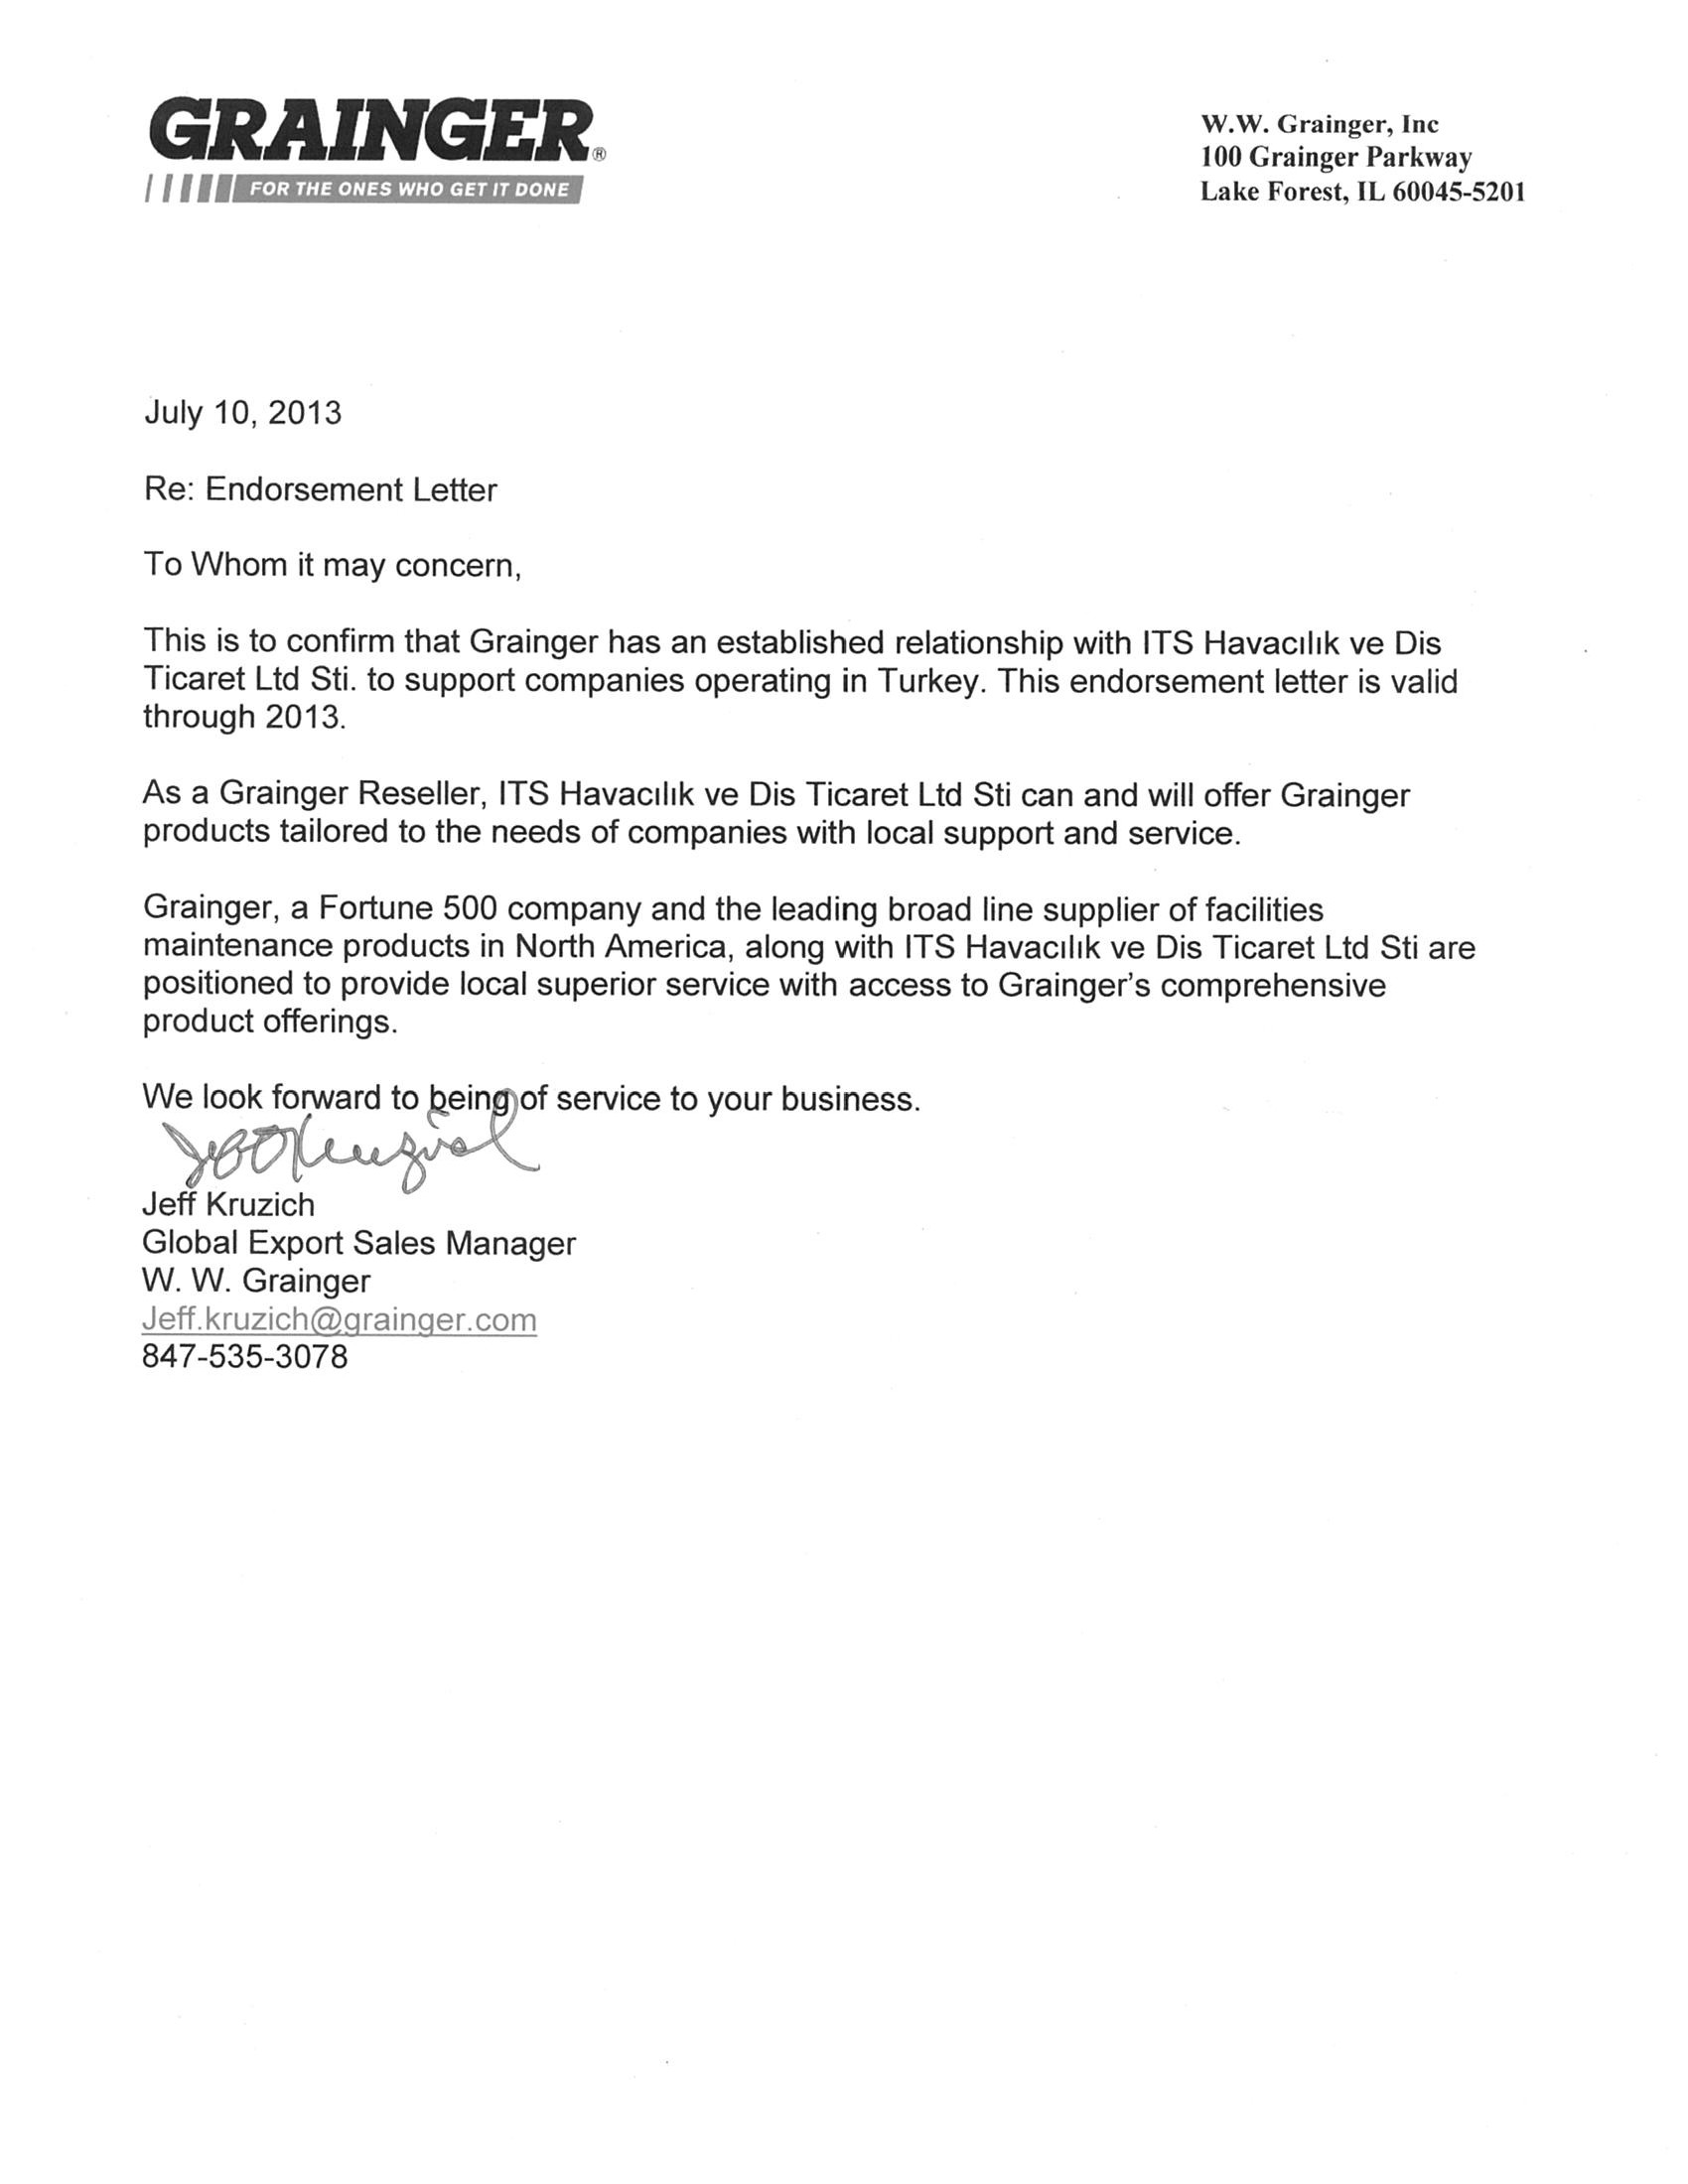 endorsement letters its aviation trading company endorsement letters